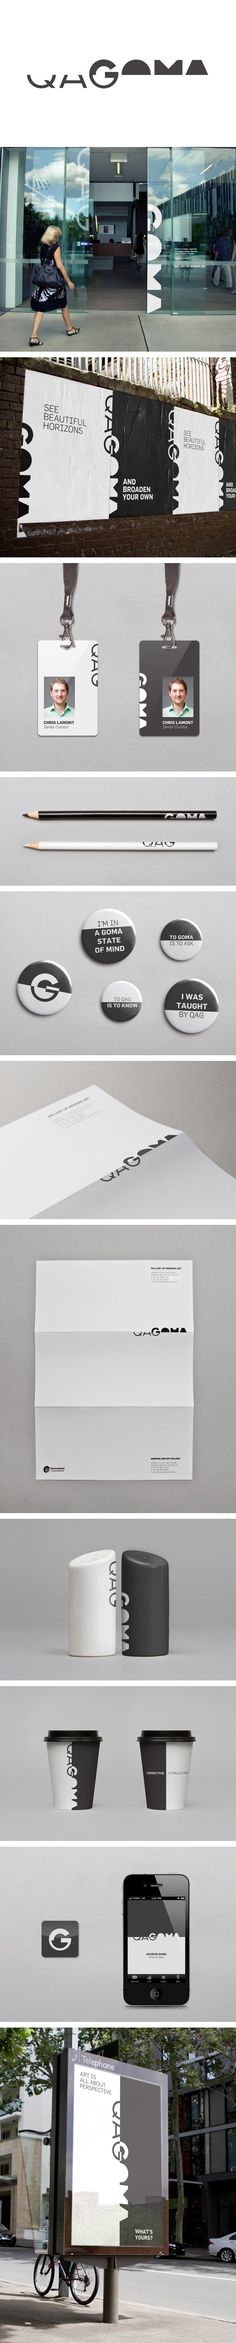 QAGOMA by Chris Maclean #identity #packaging #branding PD